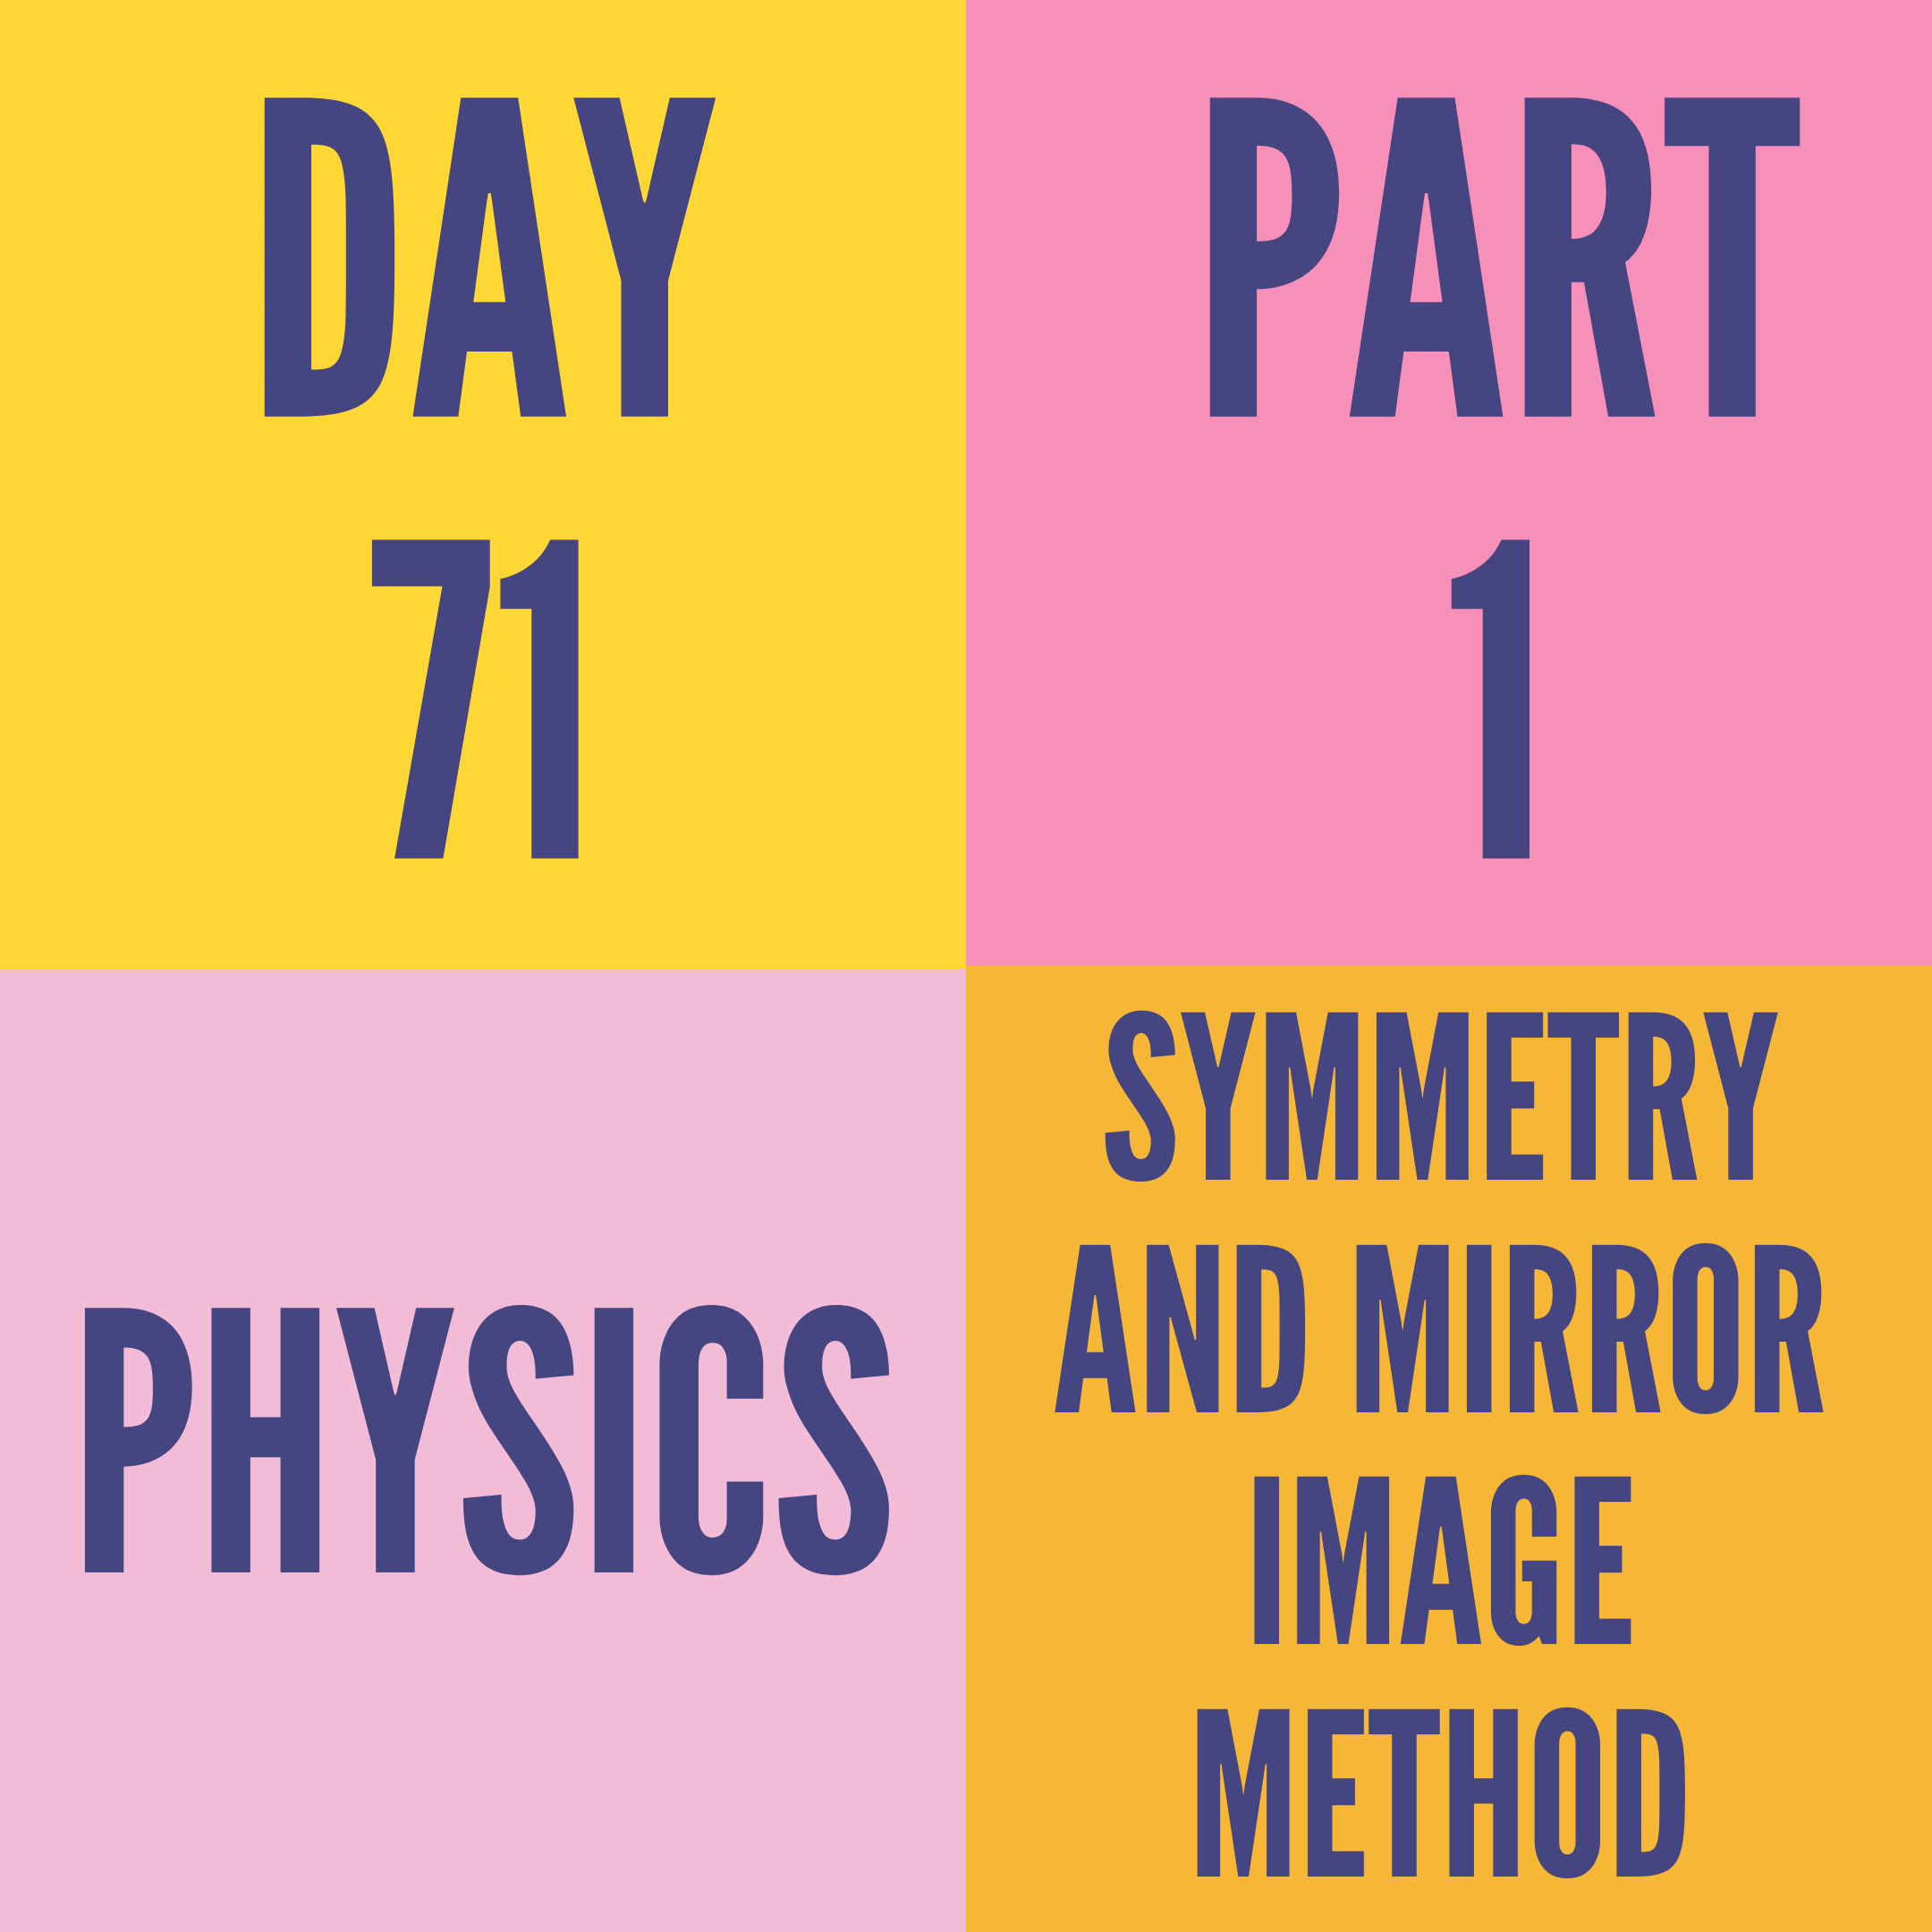 DAY-71 PART-1  SYMMETRY AND MIRROR IMAGE METHOD